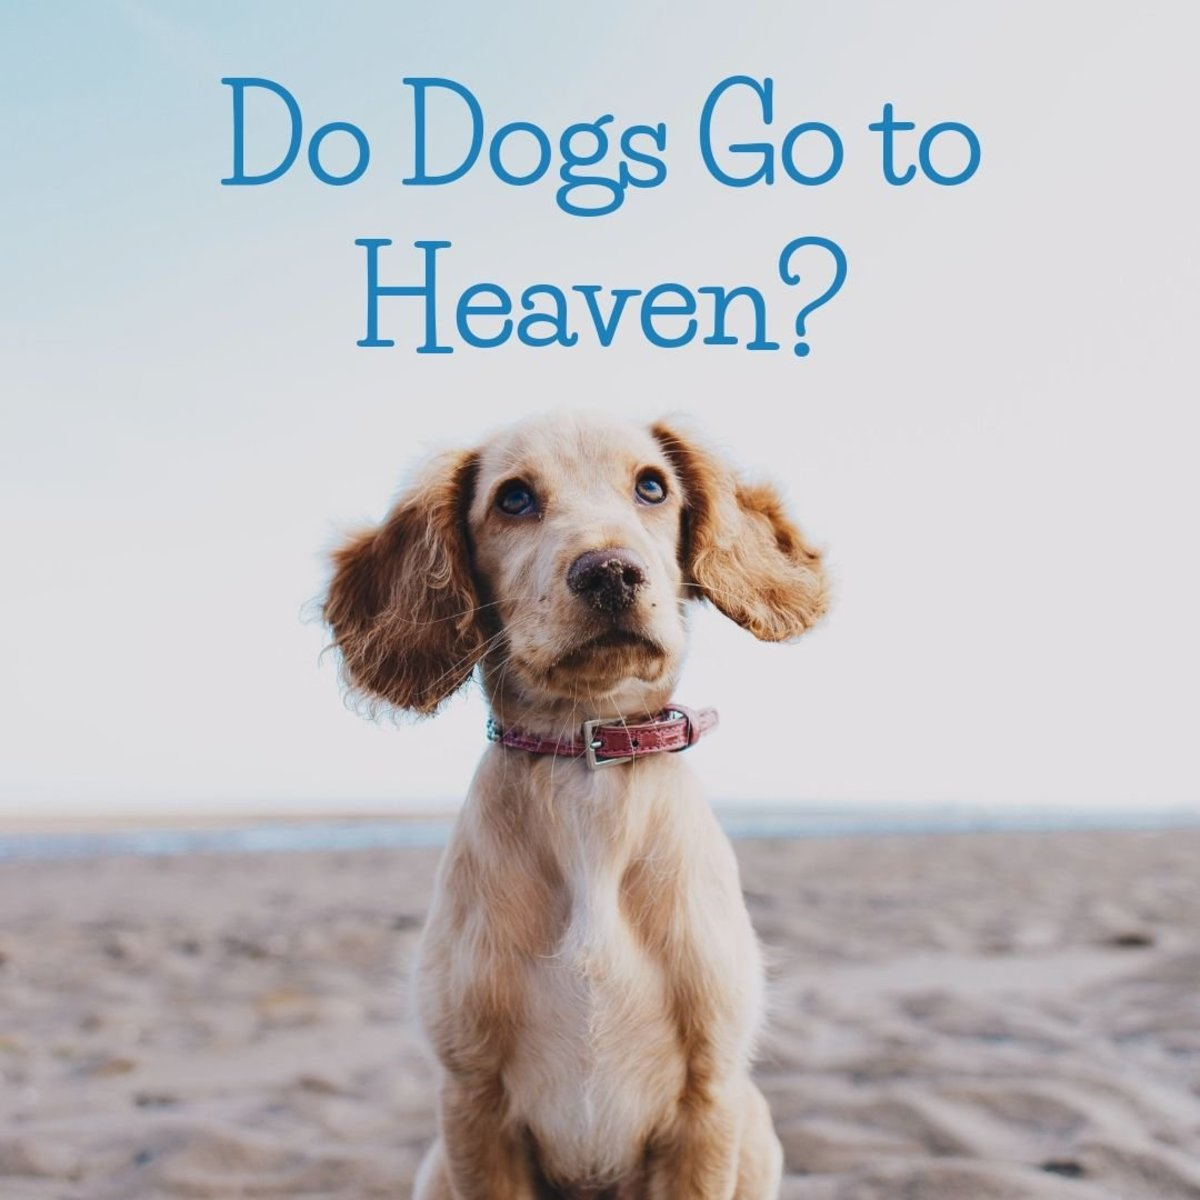 A Christian perspective on where pets go when they die